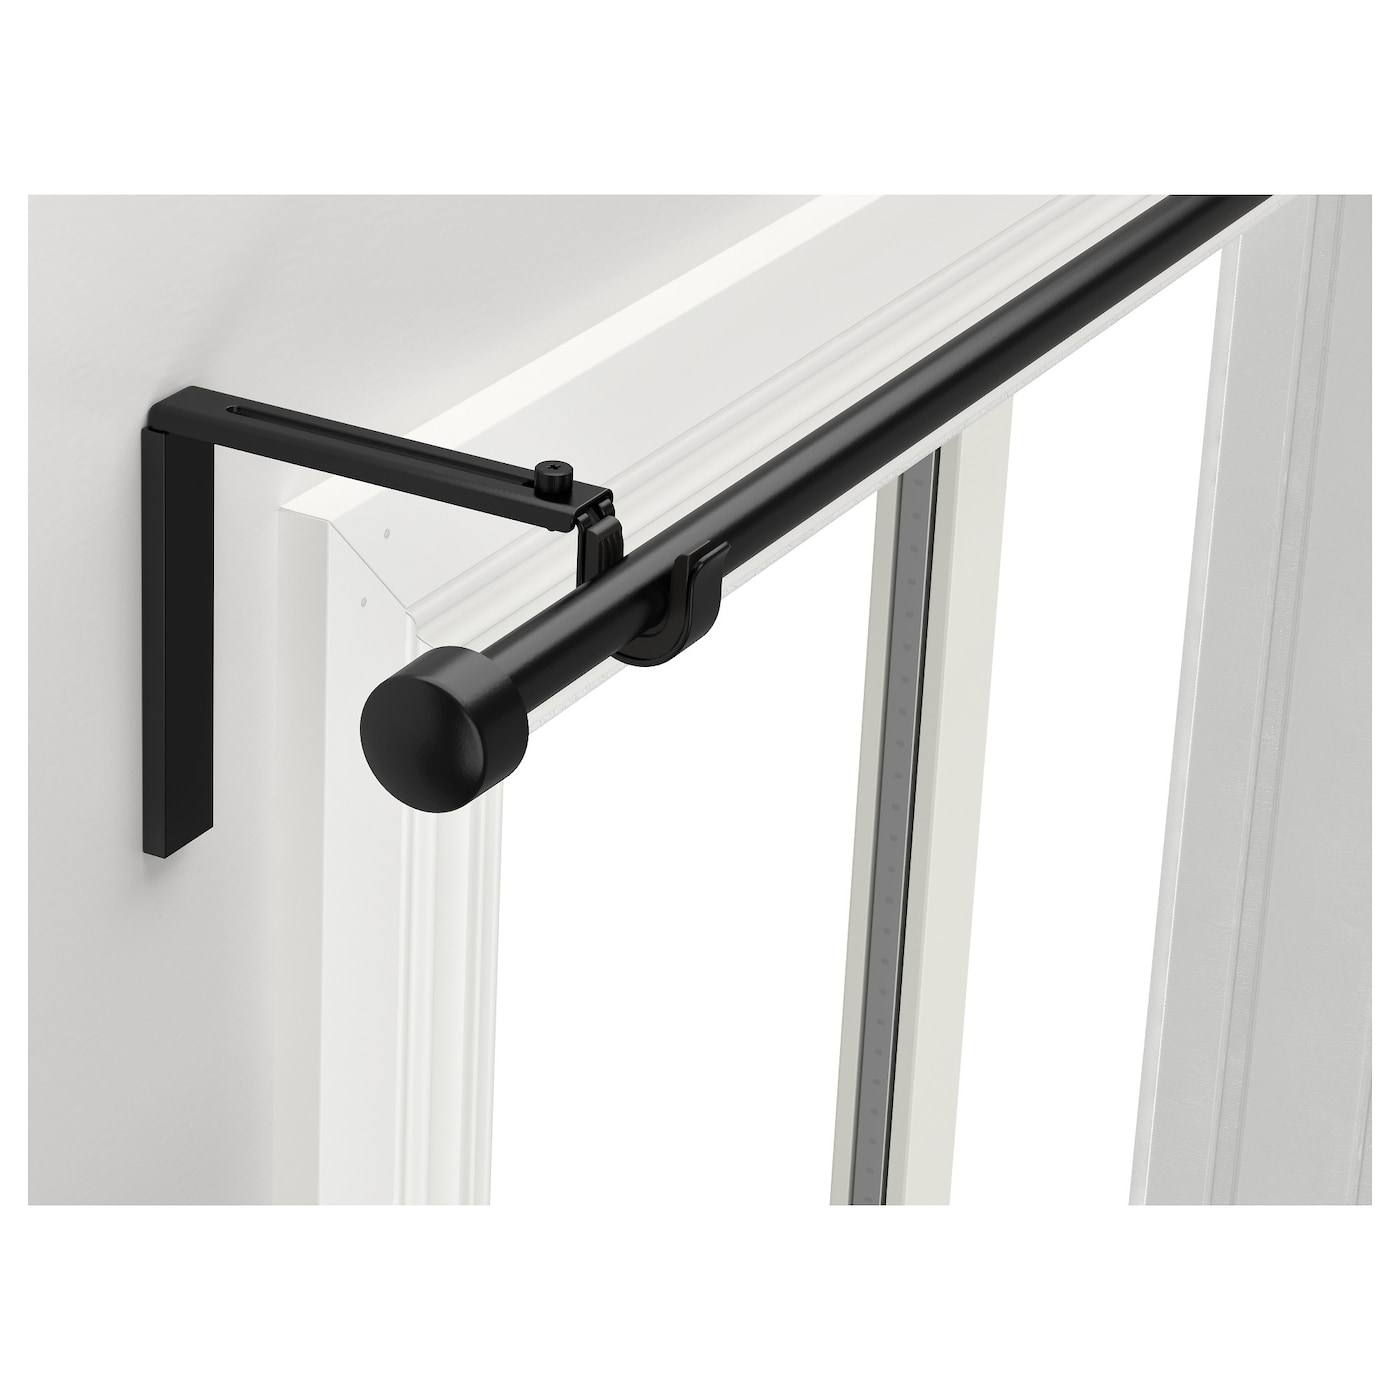 rÄcka curtain rod combination black  cm  ikea - ikea rÄcka curtain rod combination can be mounted on the wall or ceilingthe length